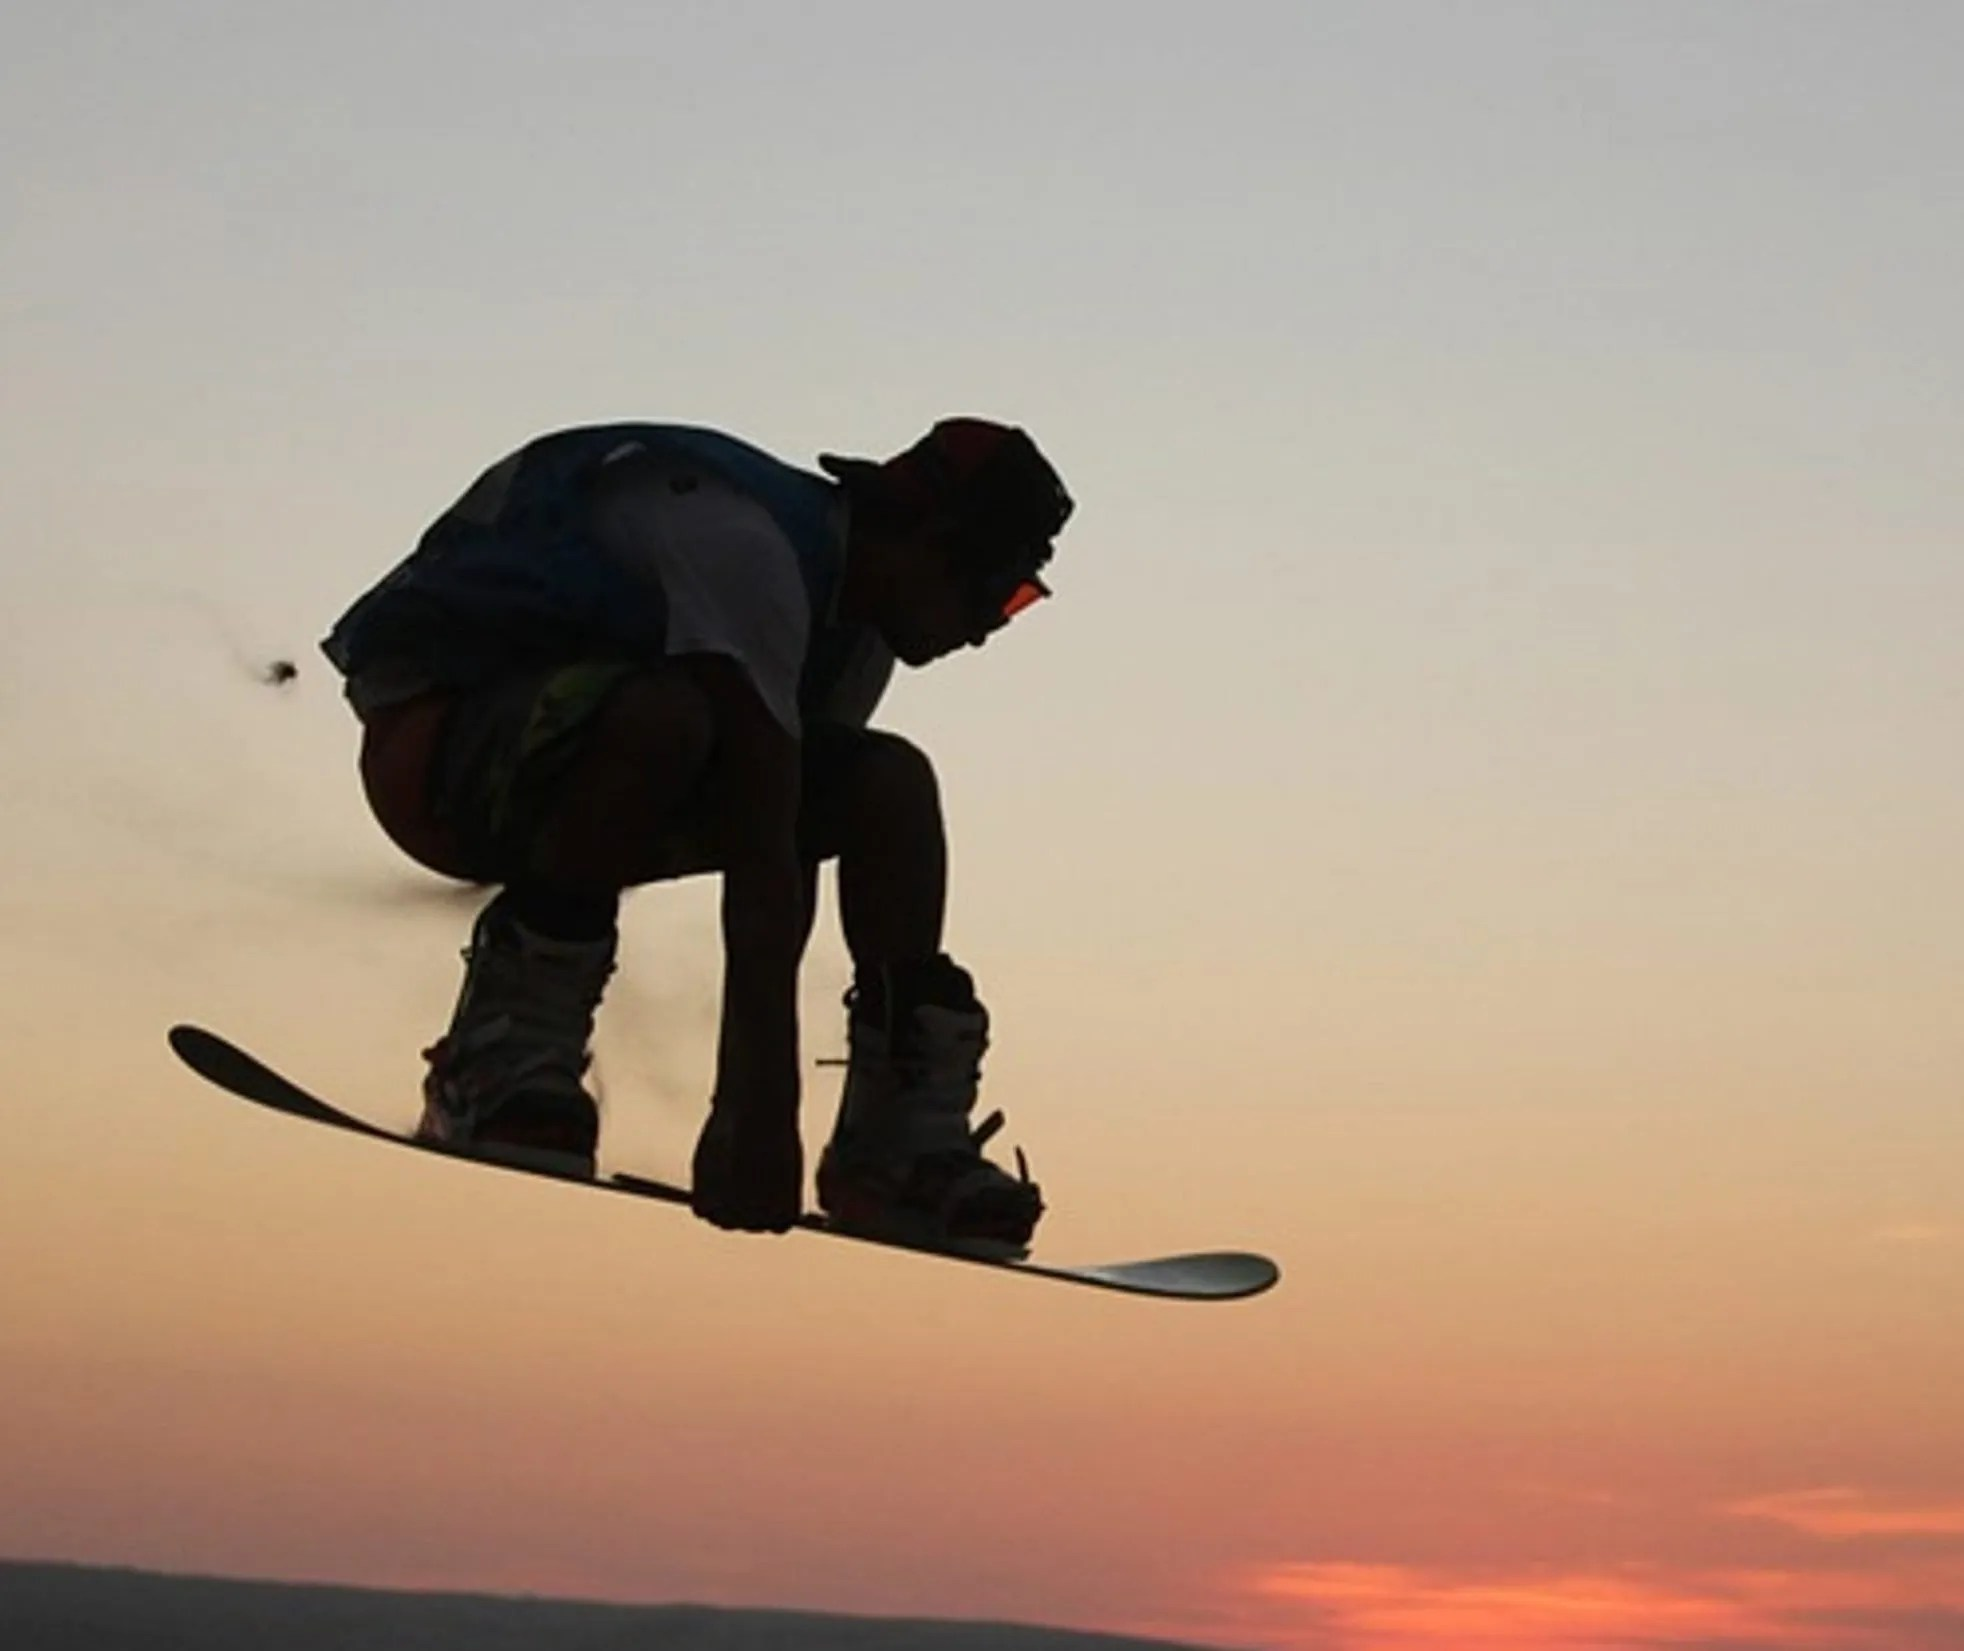 Sandboarding Competitions